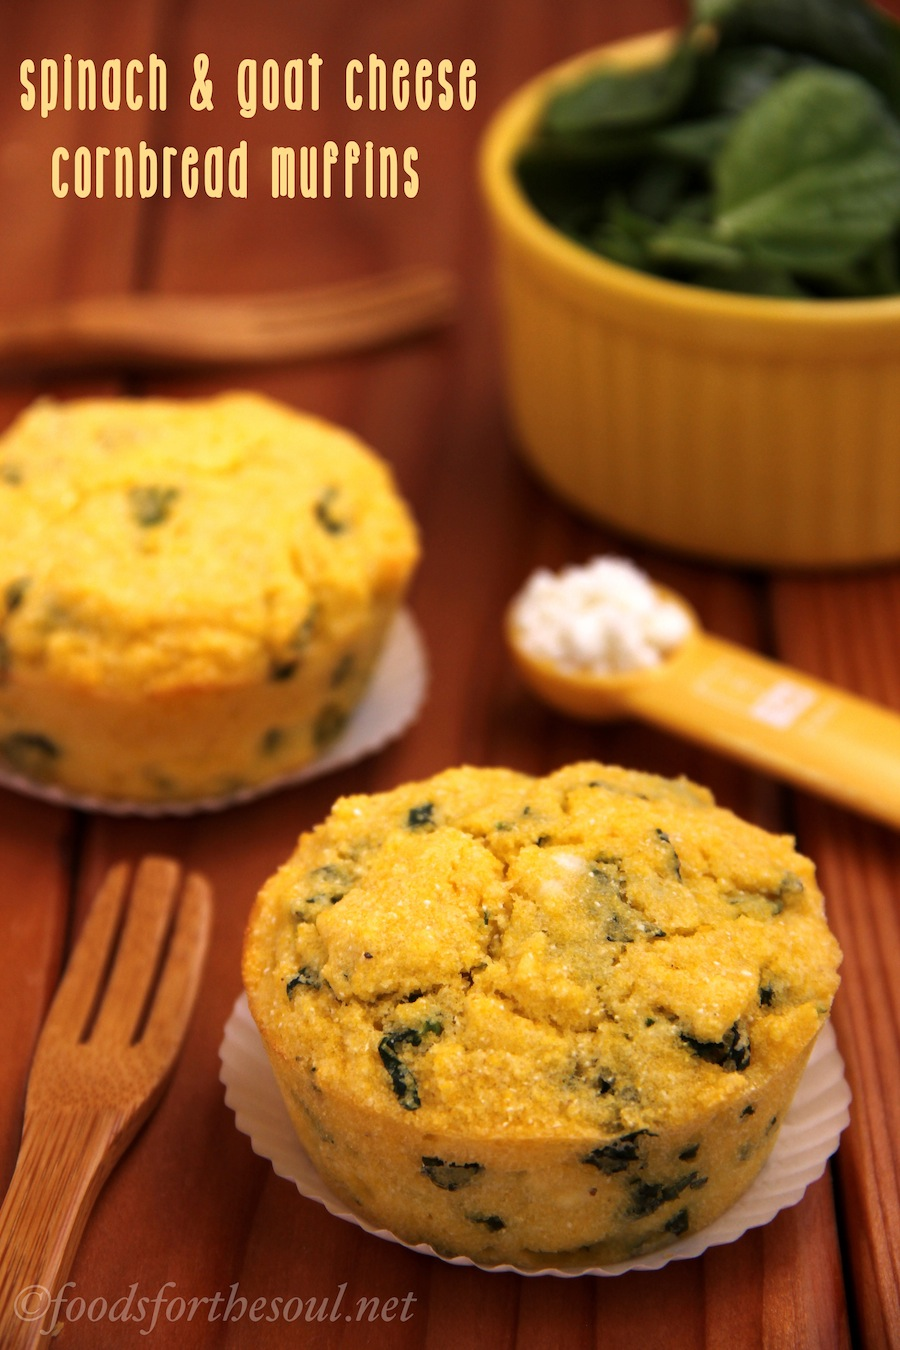 Spinach and Goat Cheese Cornbread Muffins -- moist and crumbly, just the way cornbread should be! [Gluten-free + clean-eating] | by Foods for the Soul {foodsforthesoul.net}